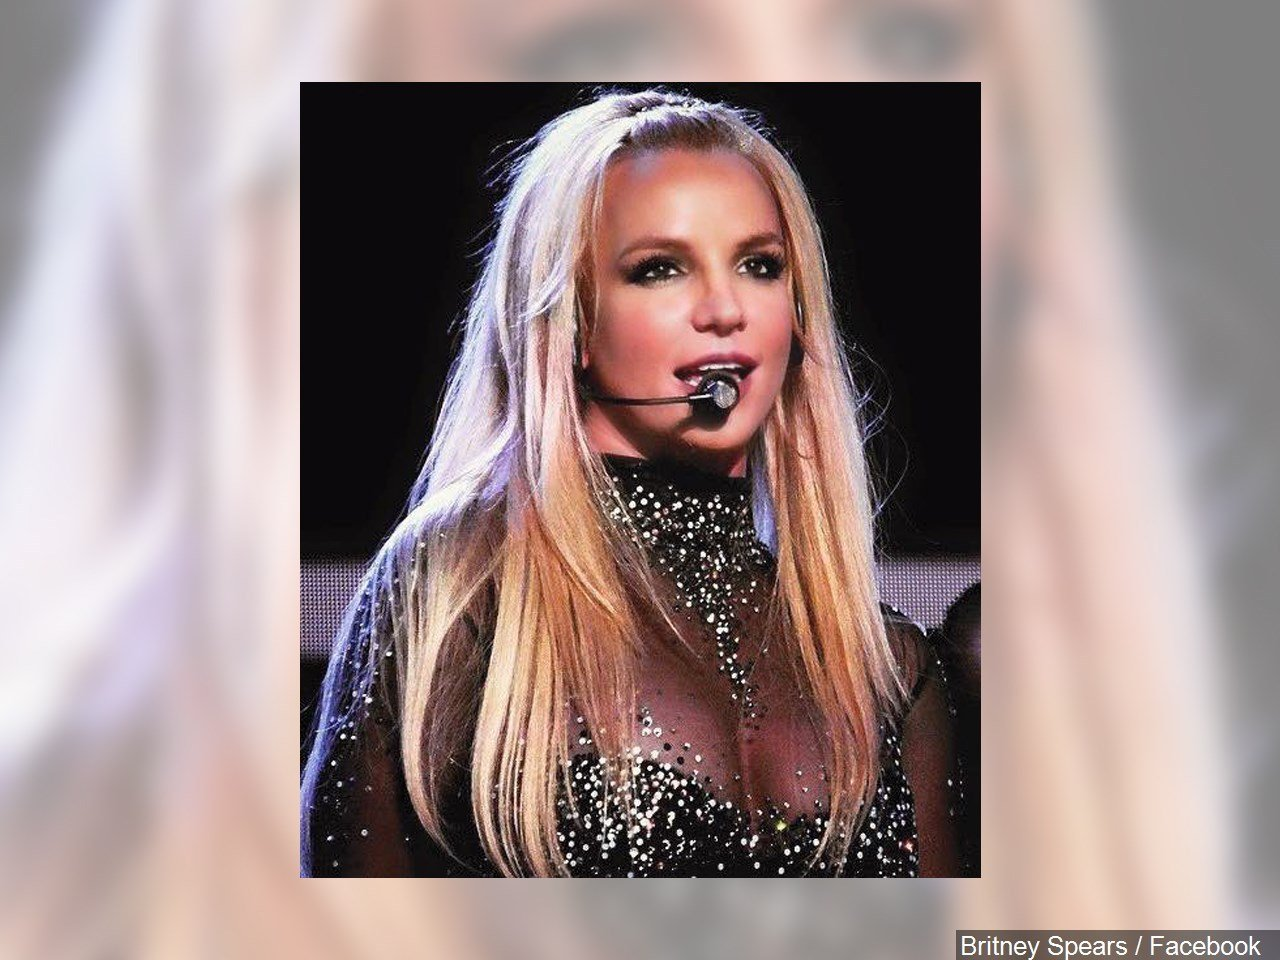 Britney Spears staged rushed by crazed fan,